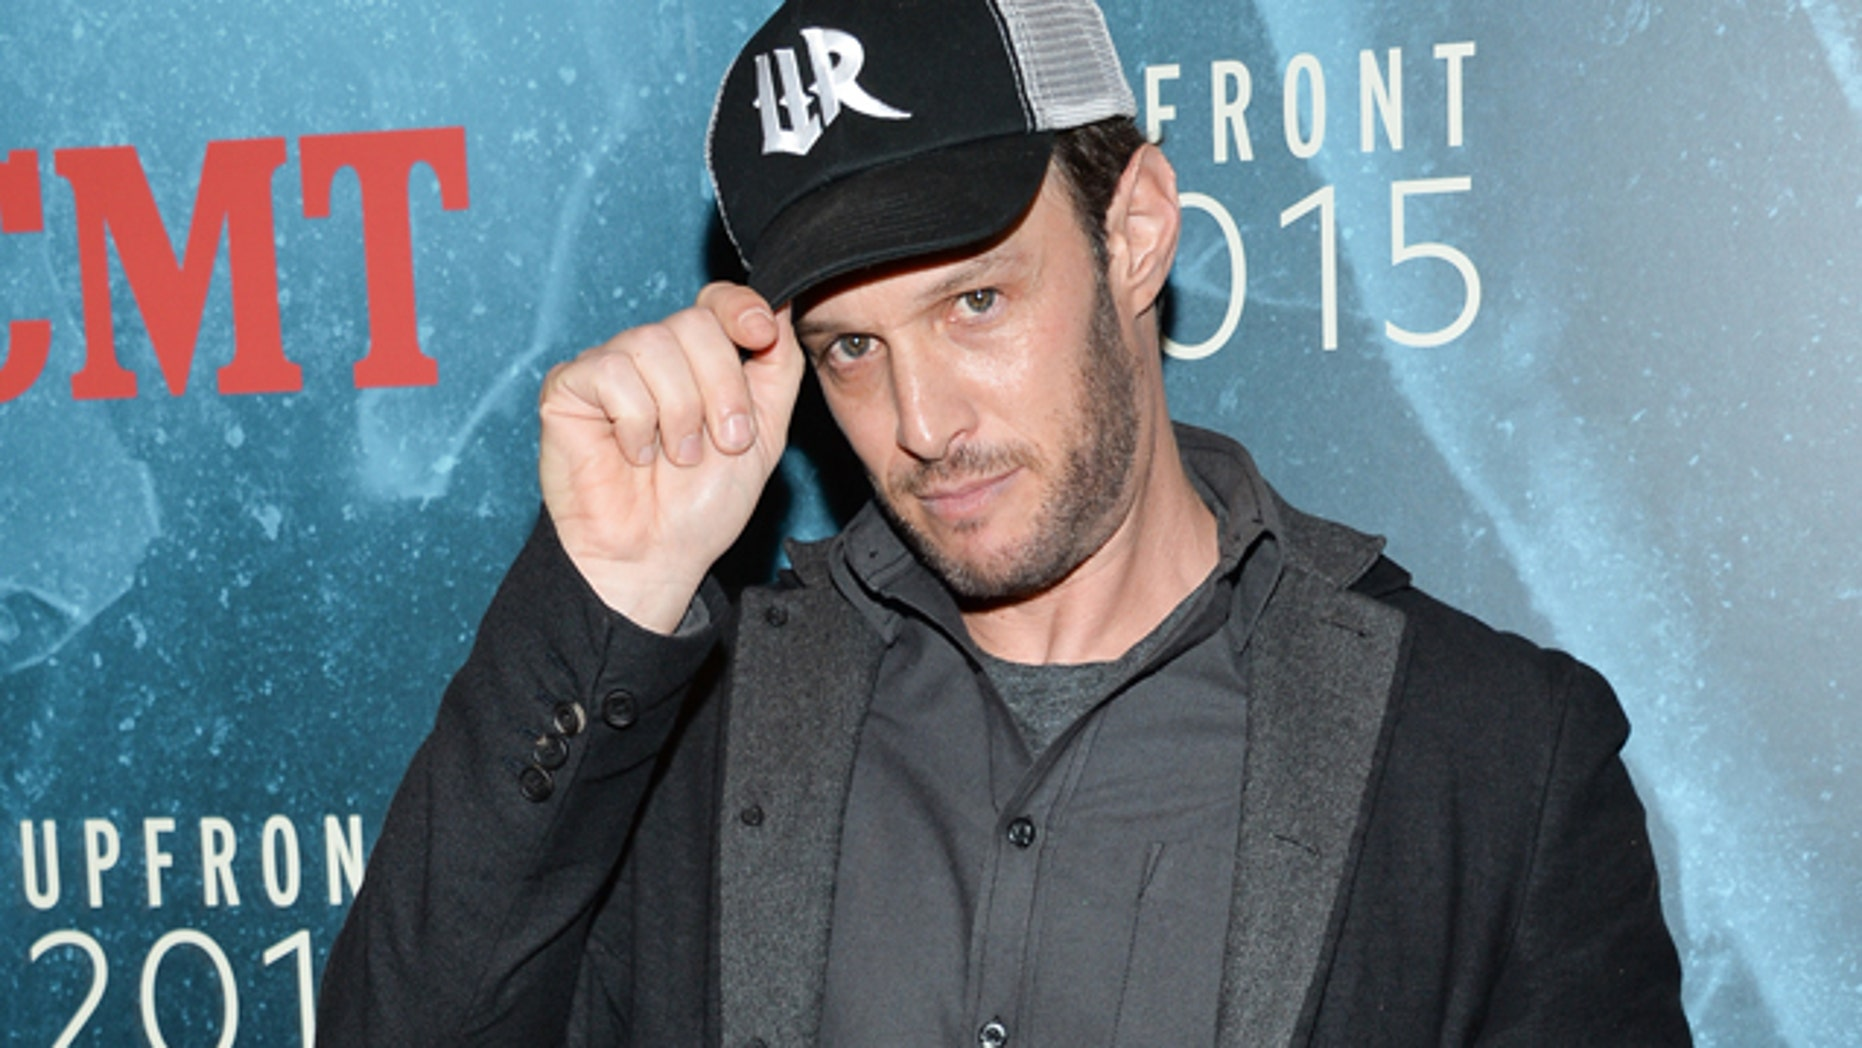 Comedian Josh Wolf attends the 2015 CMT Upfront event at the TimesCenter on Thursday, April 2, 2015, in New York.